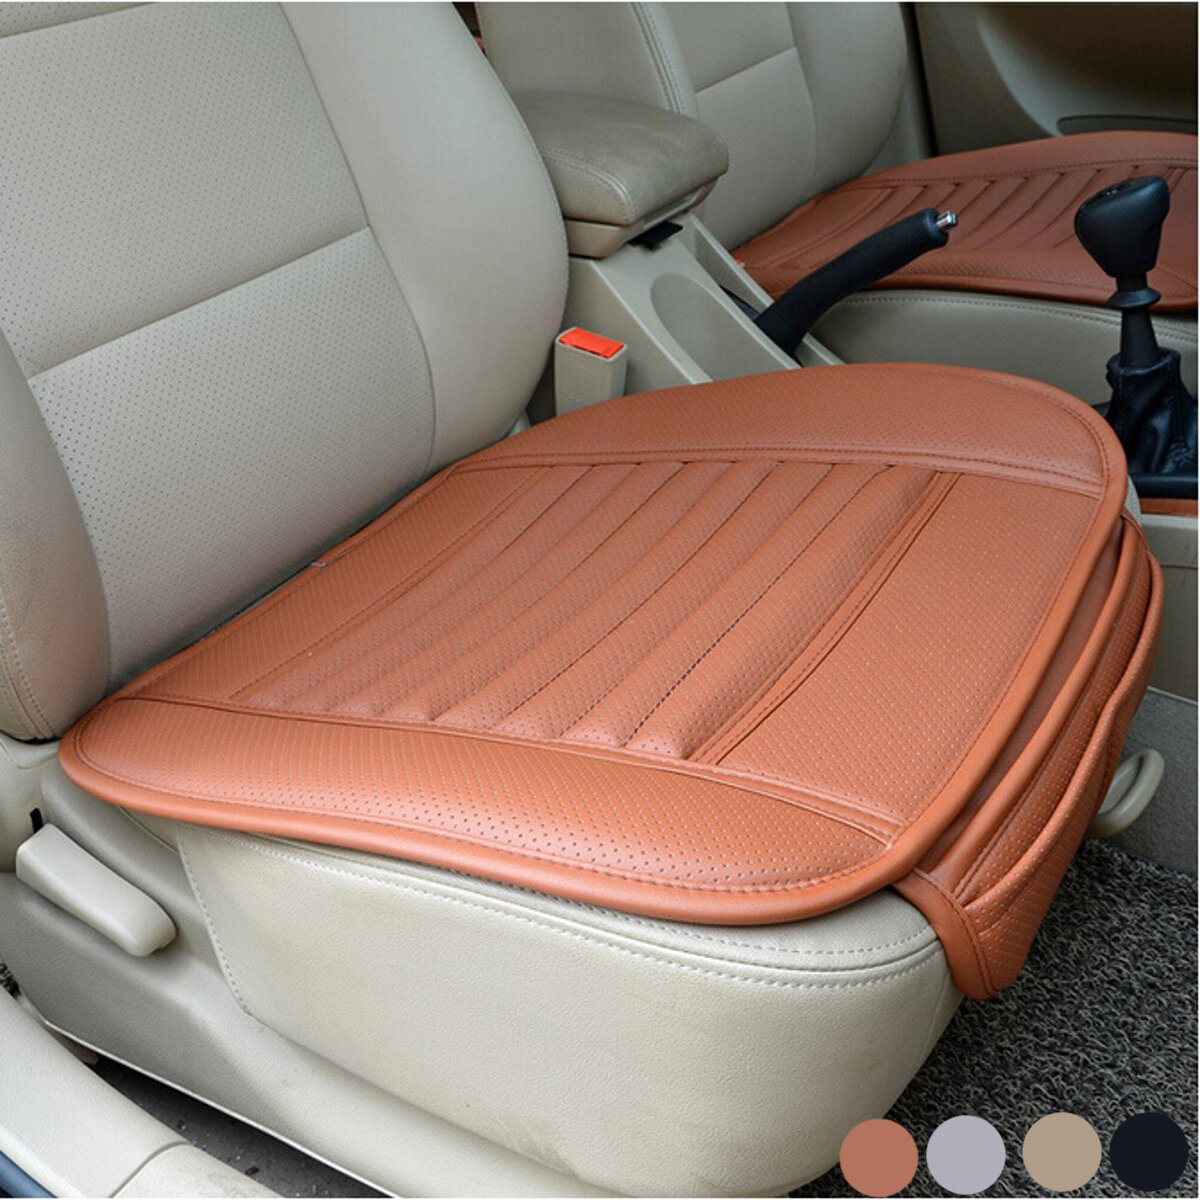 Universal Seat Pad PU Leather Bamboo Charcoal Car Cushions Covers For Auto Chairs